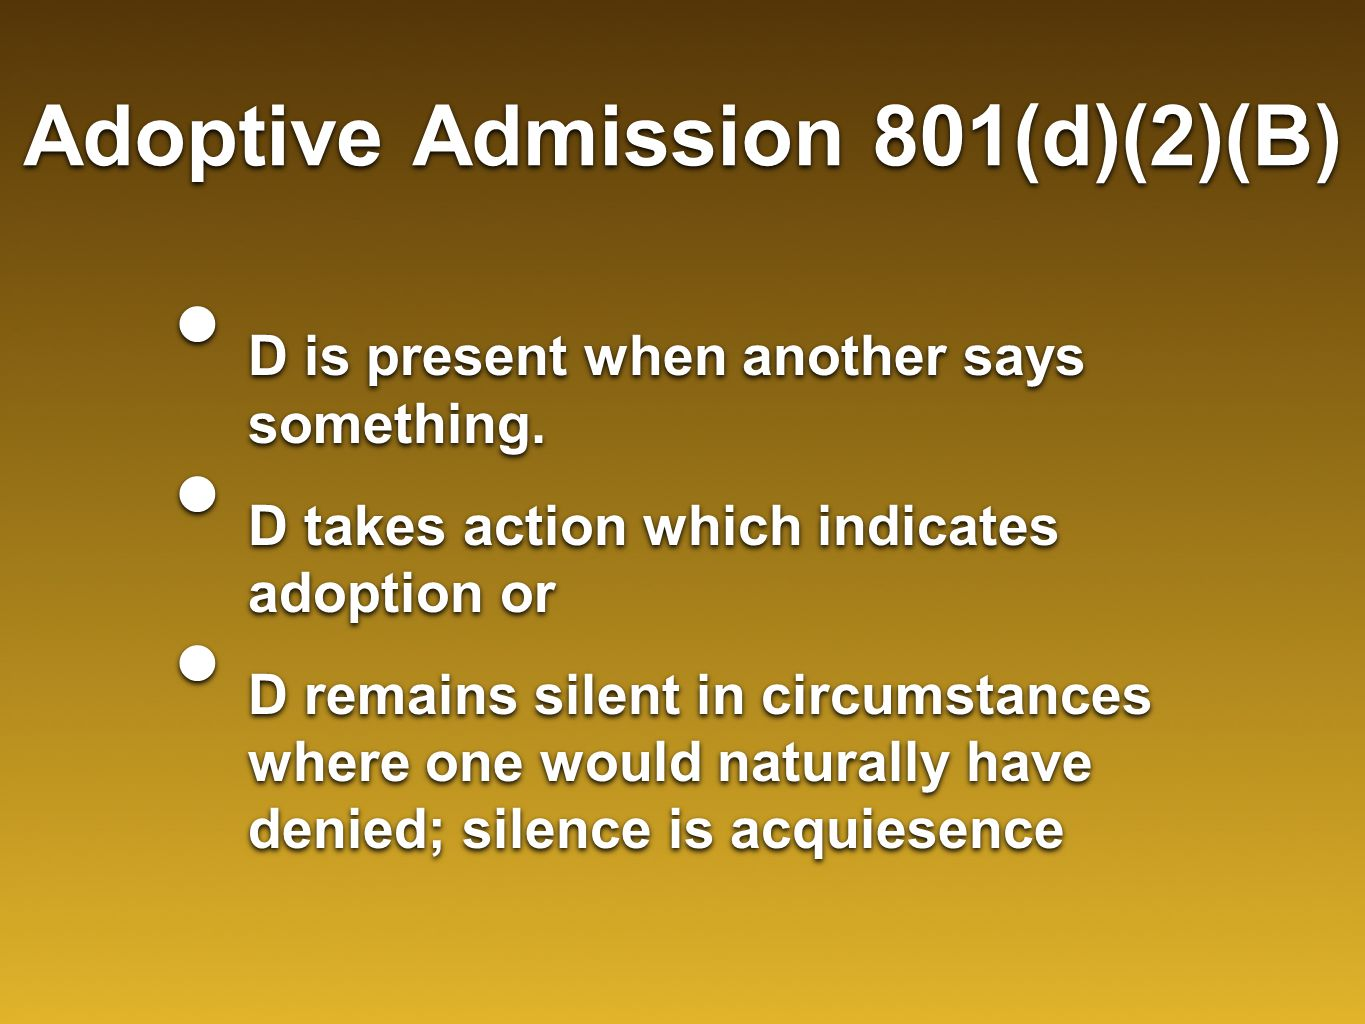 Adoptive Admission 801(d)(2)(B) D is present when another says something. D takes action which indicates adoption or D remains silent in circumstances